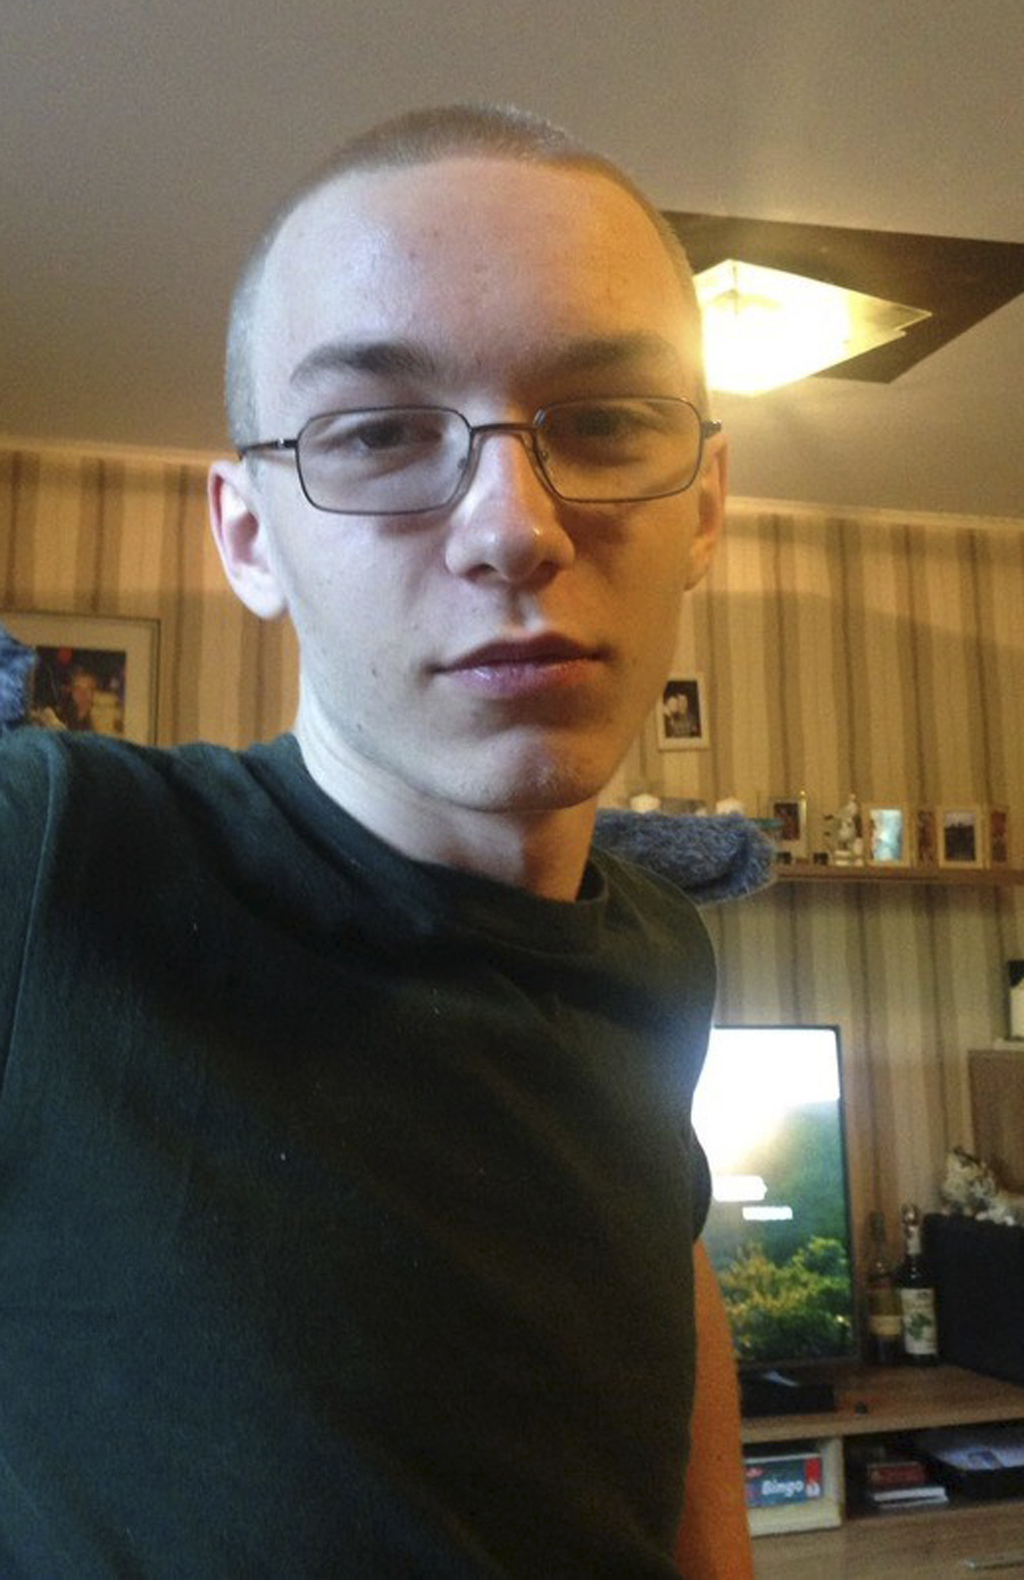 Undated photo provided by police in Bochum shows 19-year-old Martin Hesse. Police have launched a manhunt for the man who allegedly kil...